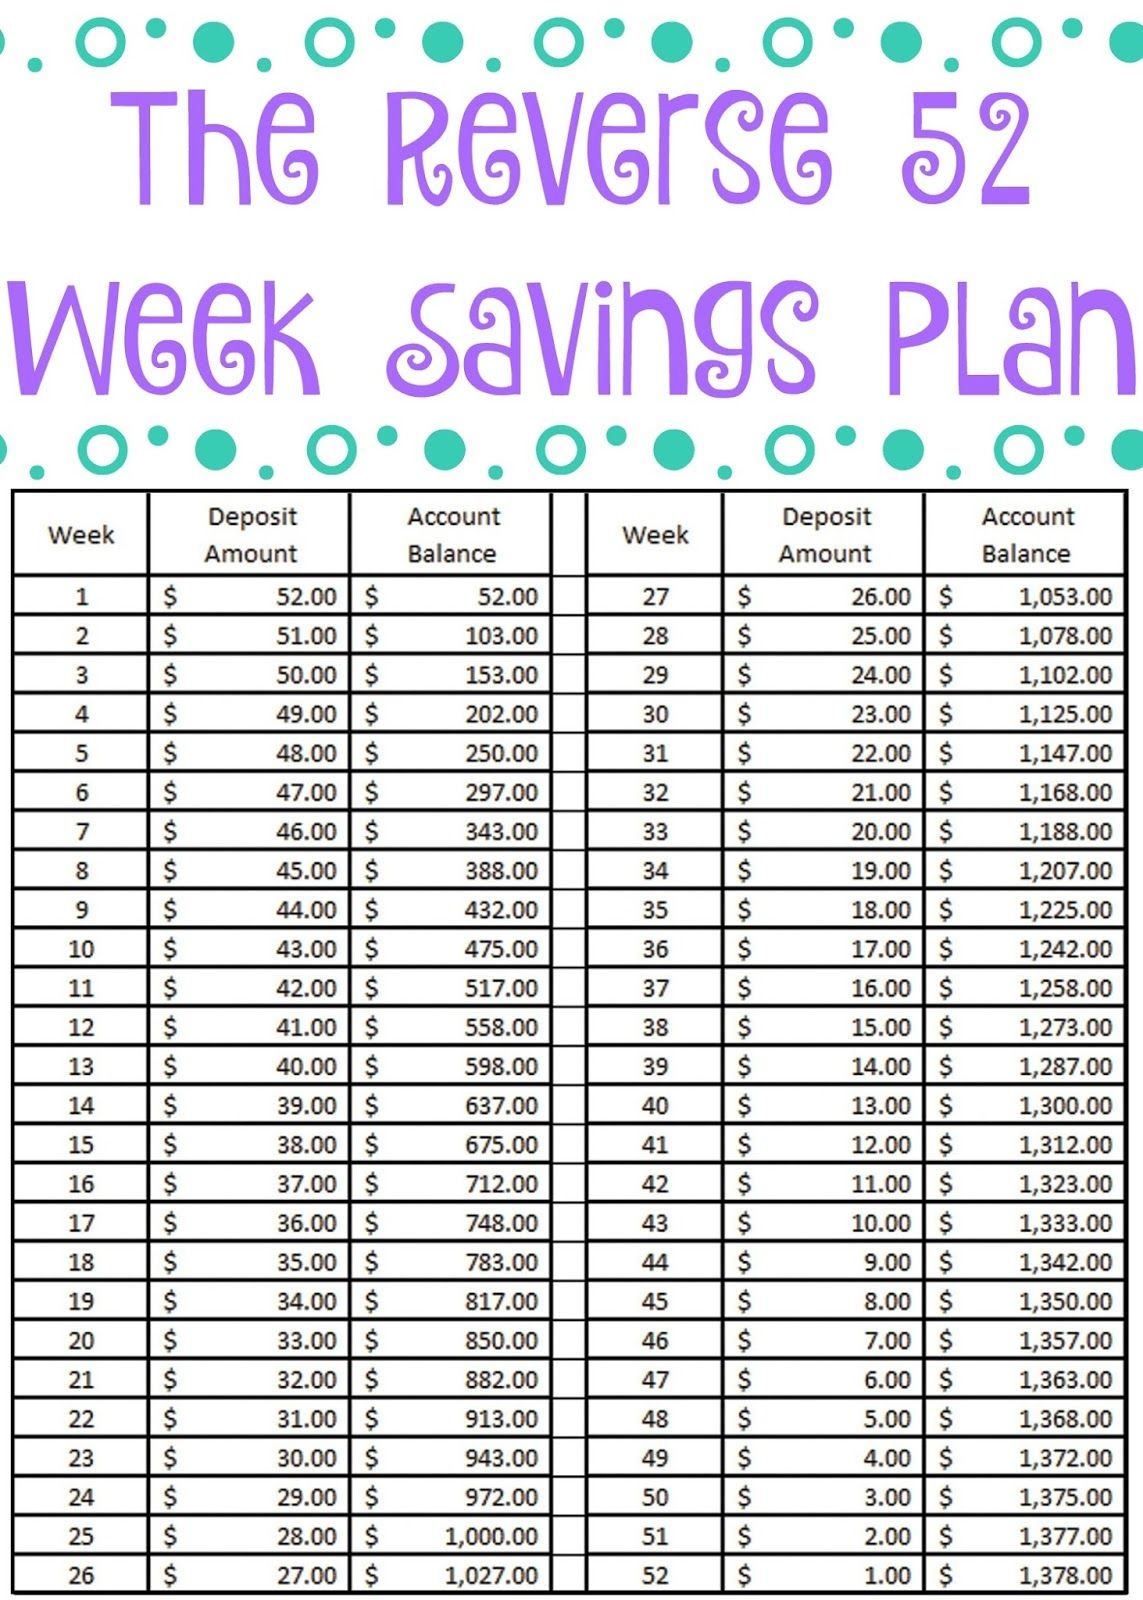 photograph relating to 52 Week Savings Plan Printable identified as The Opposite 52 7 days Personal savings Program + Absolutely free Printable 52 7 days